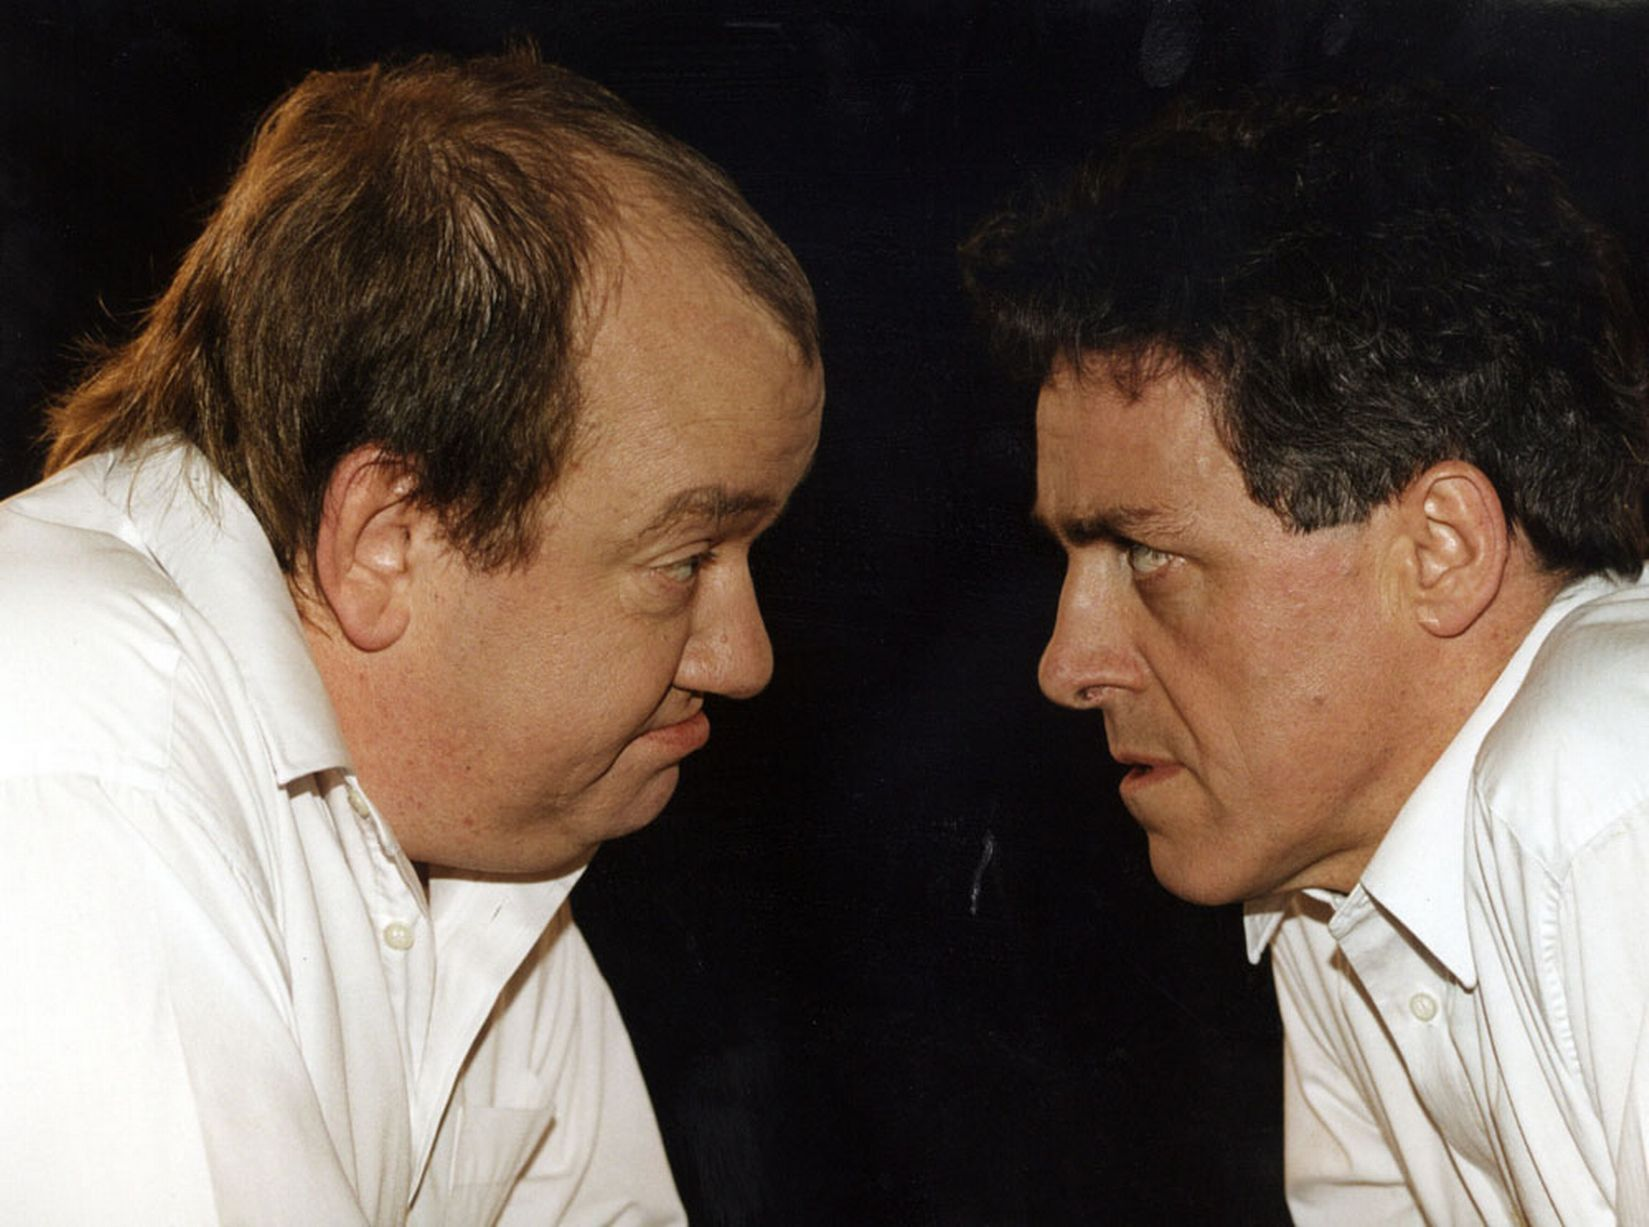 Mel Smith And Griff Rhys Jones Alas Smith And Jones Is A British Comedy Sketch Television Series Featuring Mel Smith And Comedy Duos Uk Tv Shows Sketch Comedy